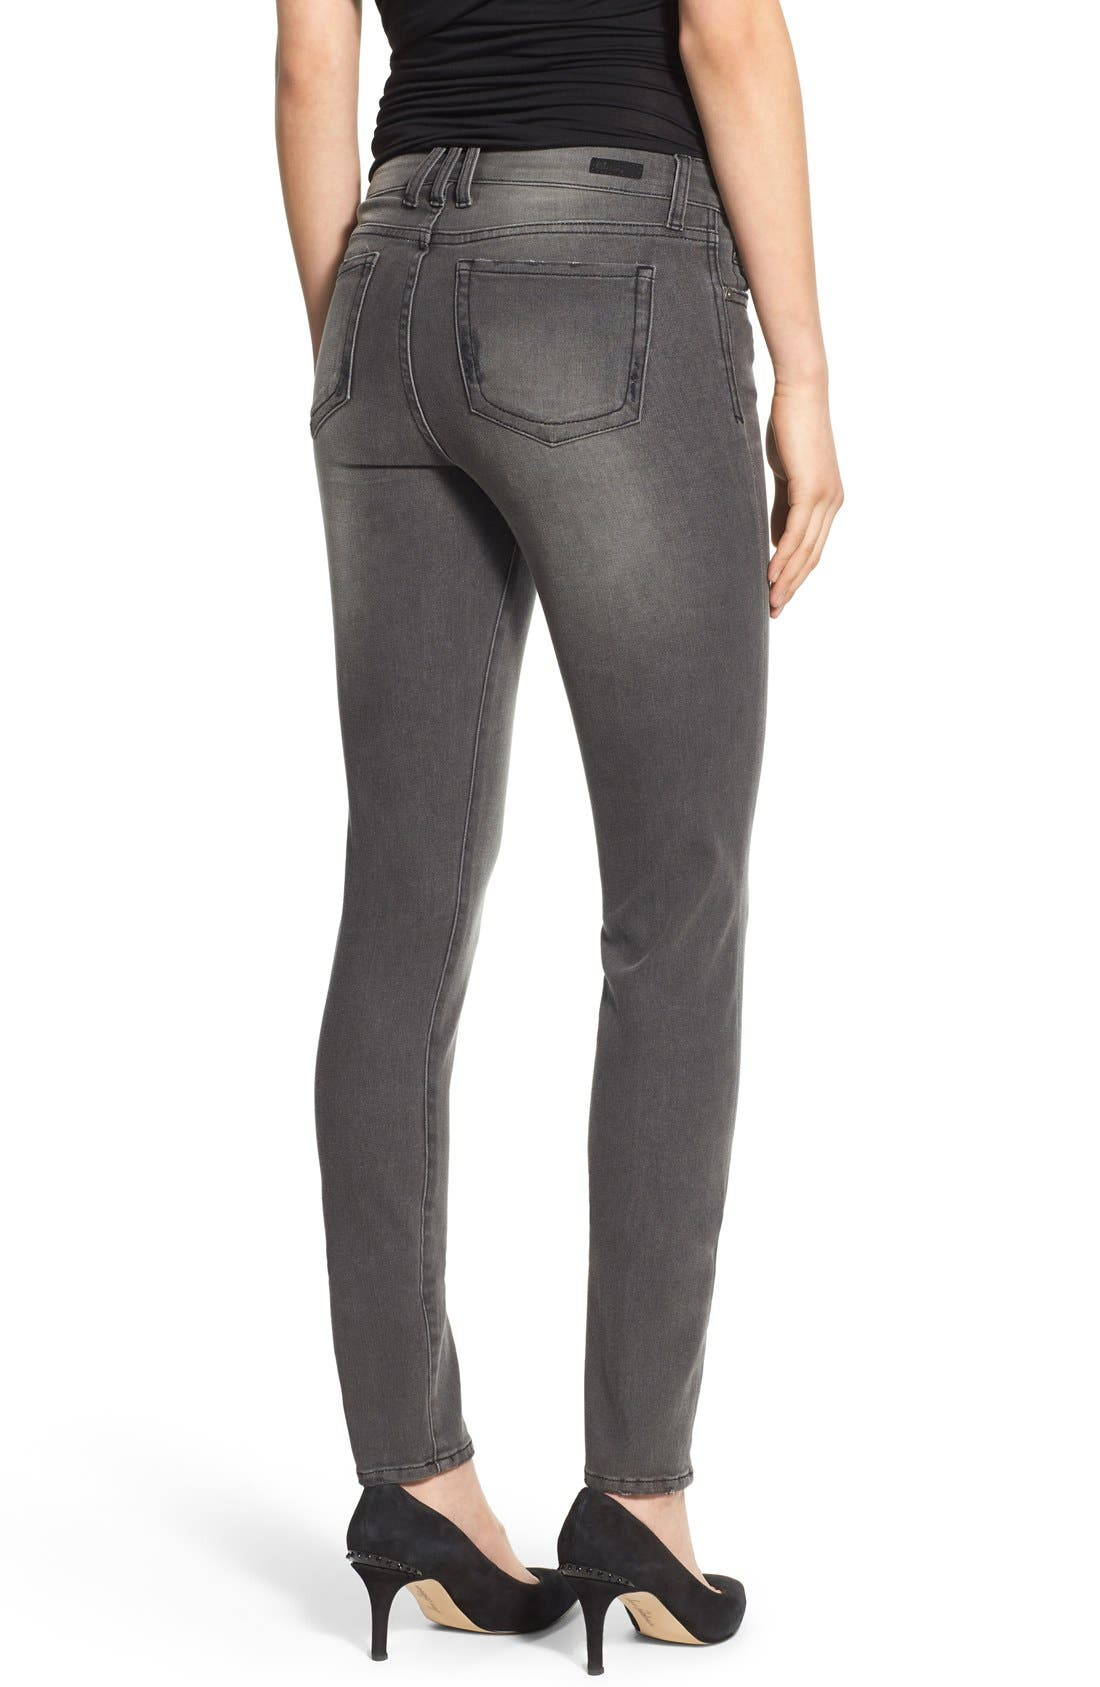 Alternate Image 2  - KUT from the Kloth 'Diana' Stretch Skinny Jeans (Continuity) (Regular & Petite)